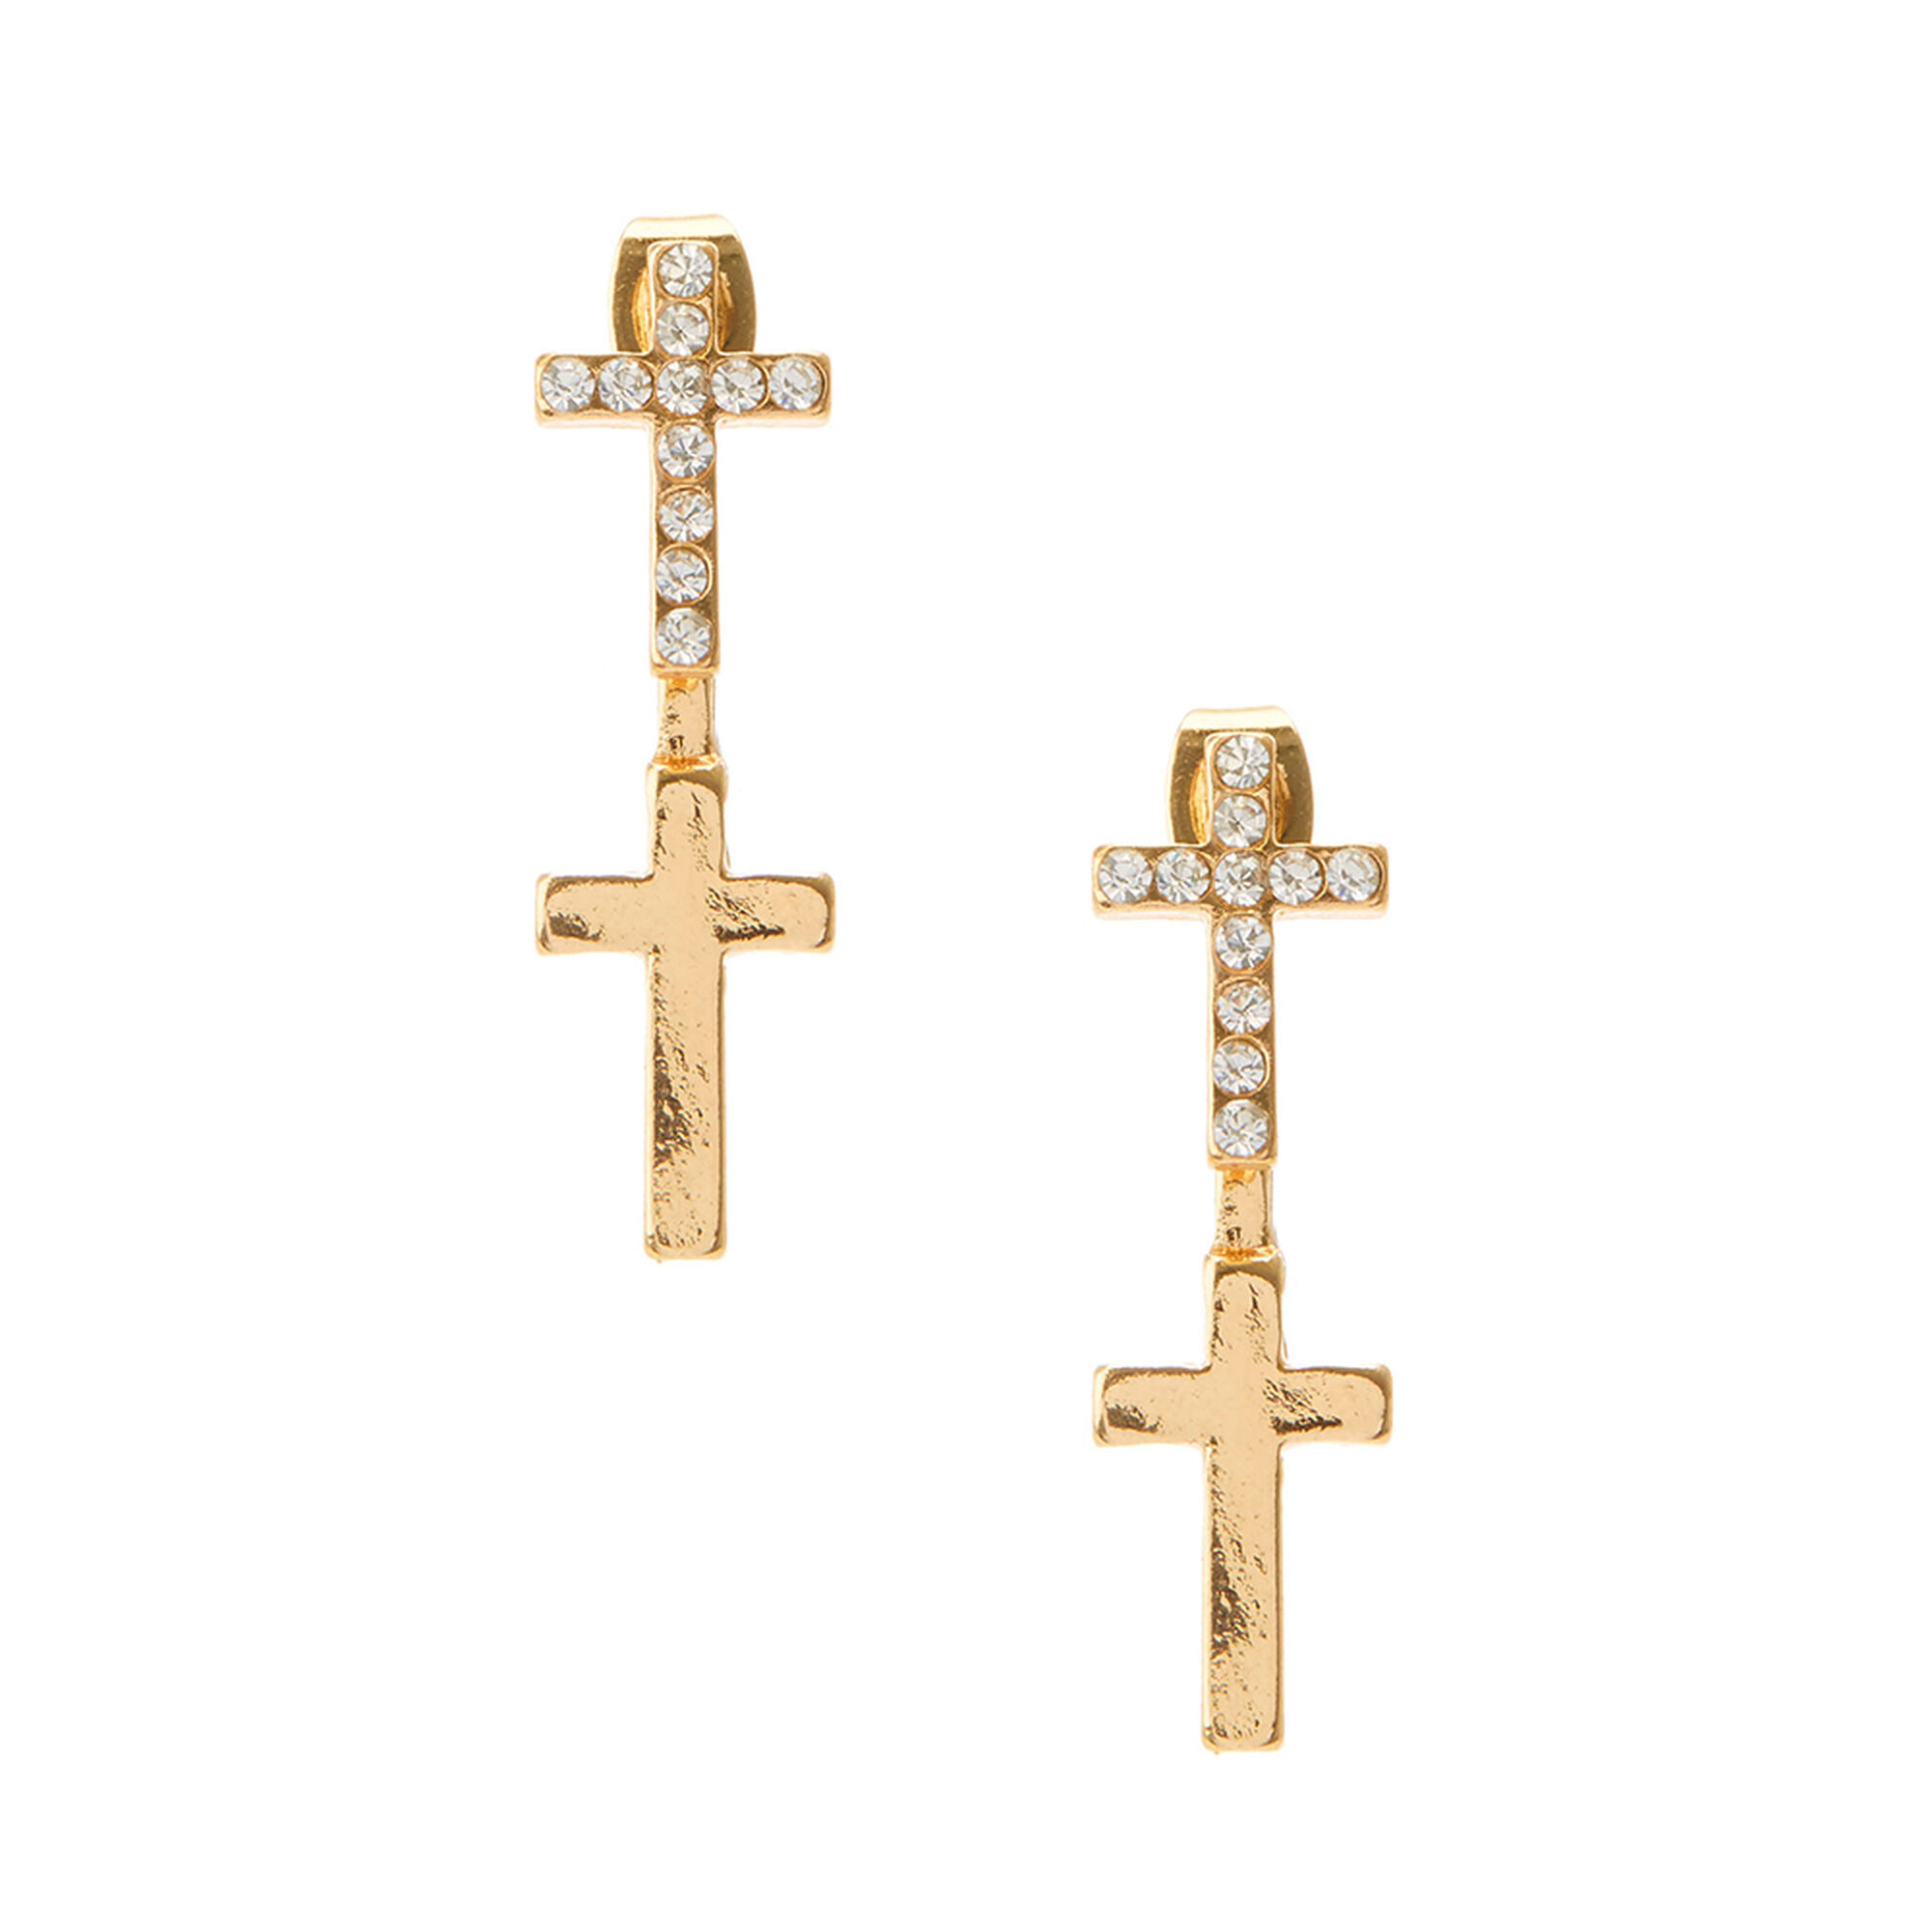 Goldtone Double Cross Front And Back Earrings,